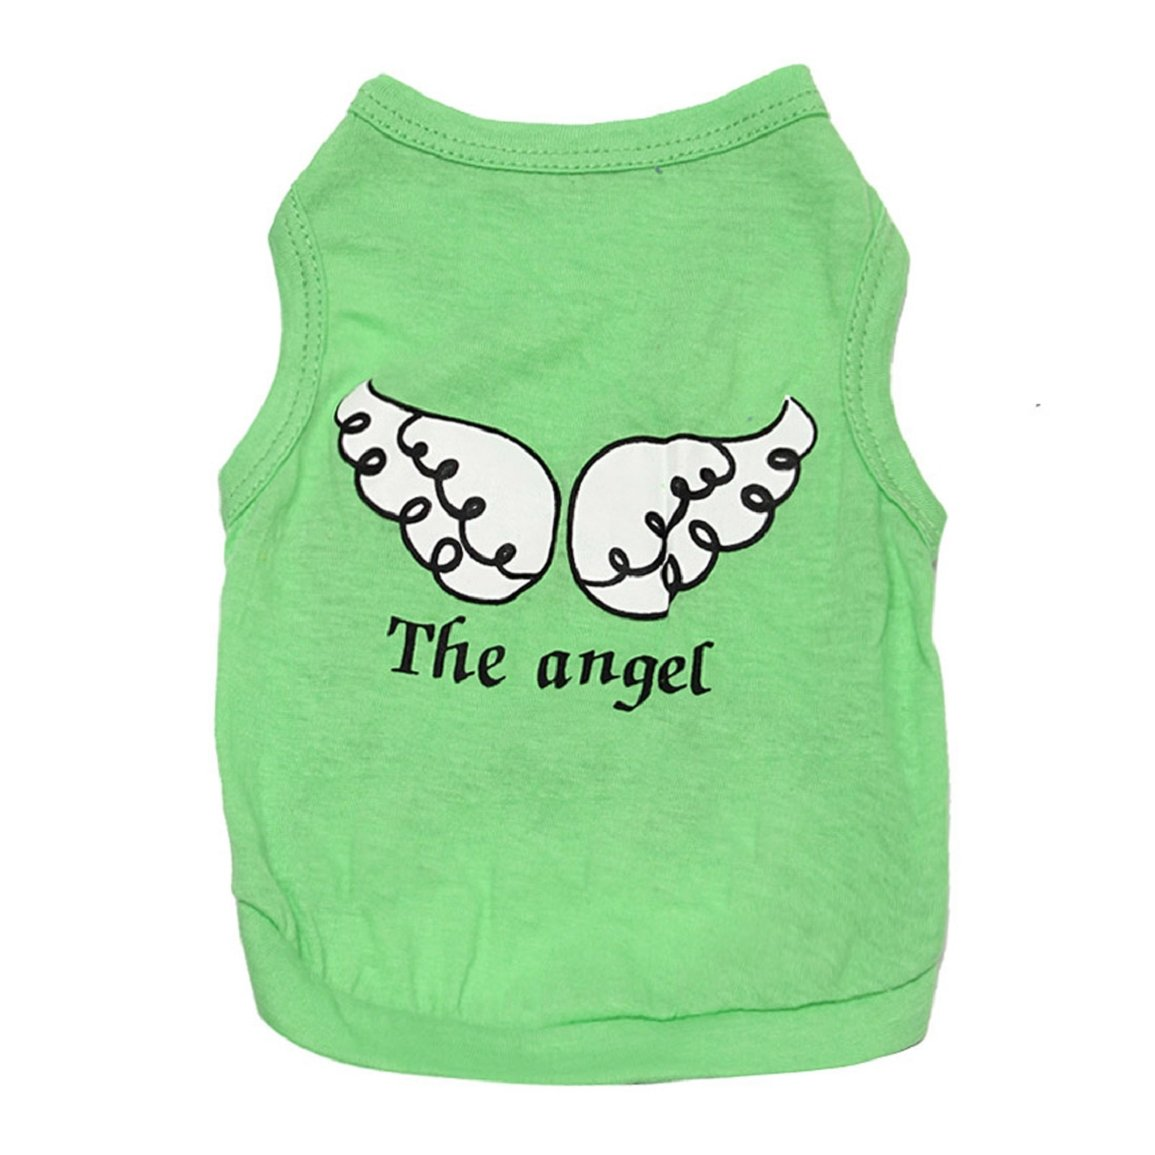 M, Green Changeshopping Summer Pet Puppy Small Dog Cat Pet Clothes Vest Shirt Wing Apparel New